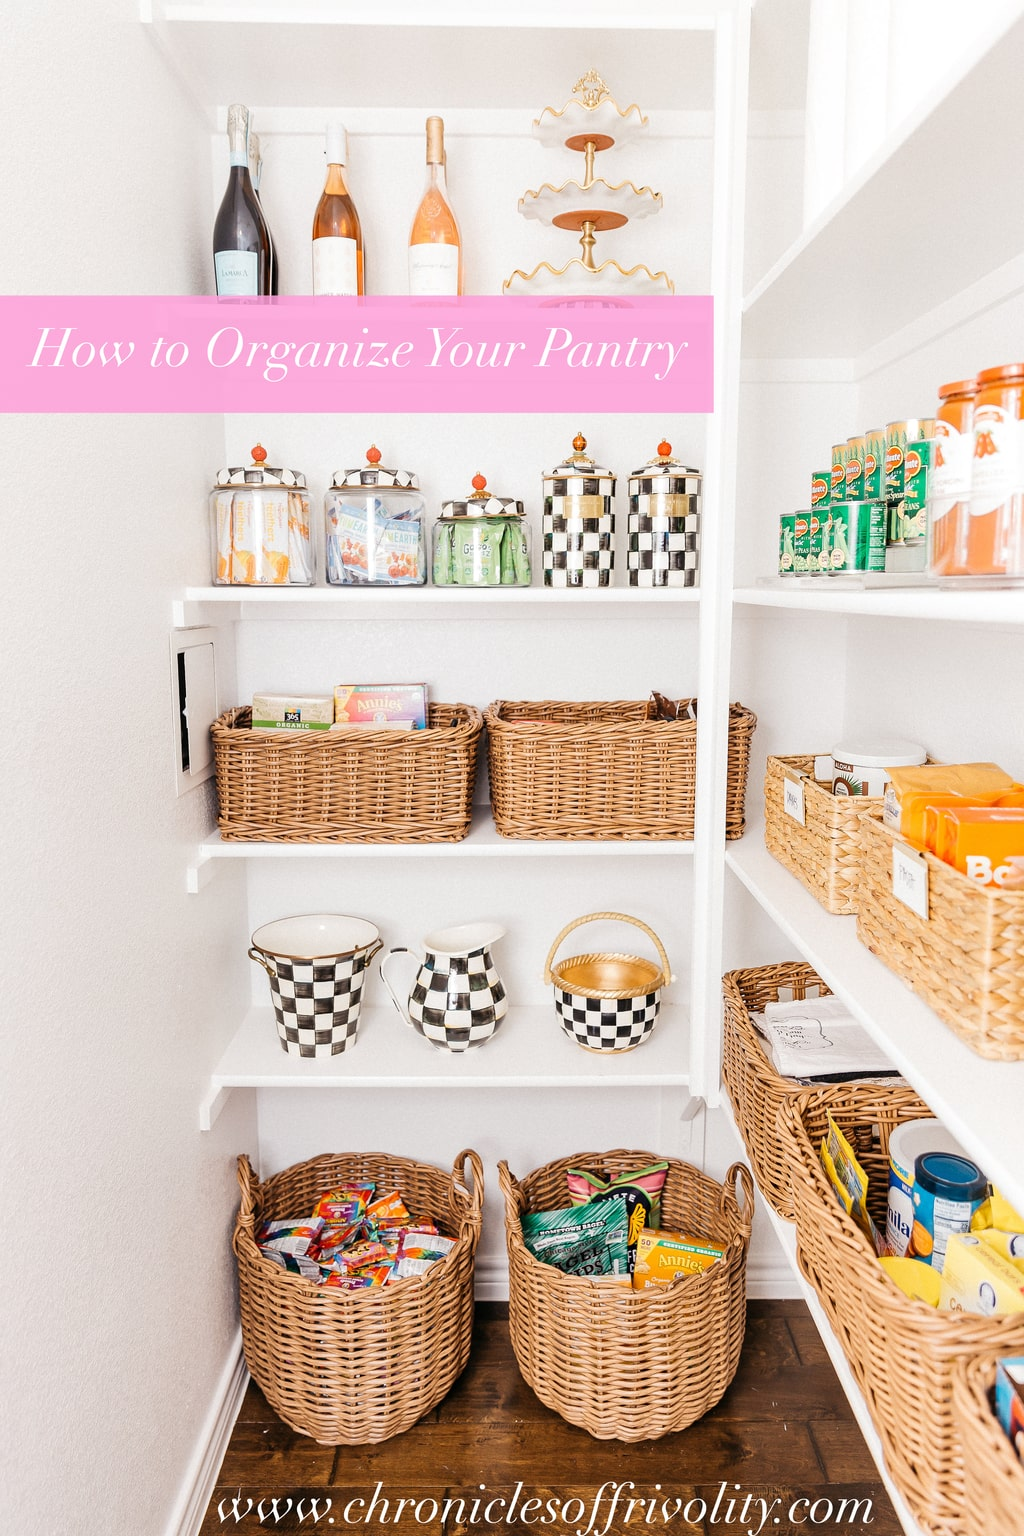 How To Organize Your Kitchen Pantry | Alyson Haley